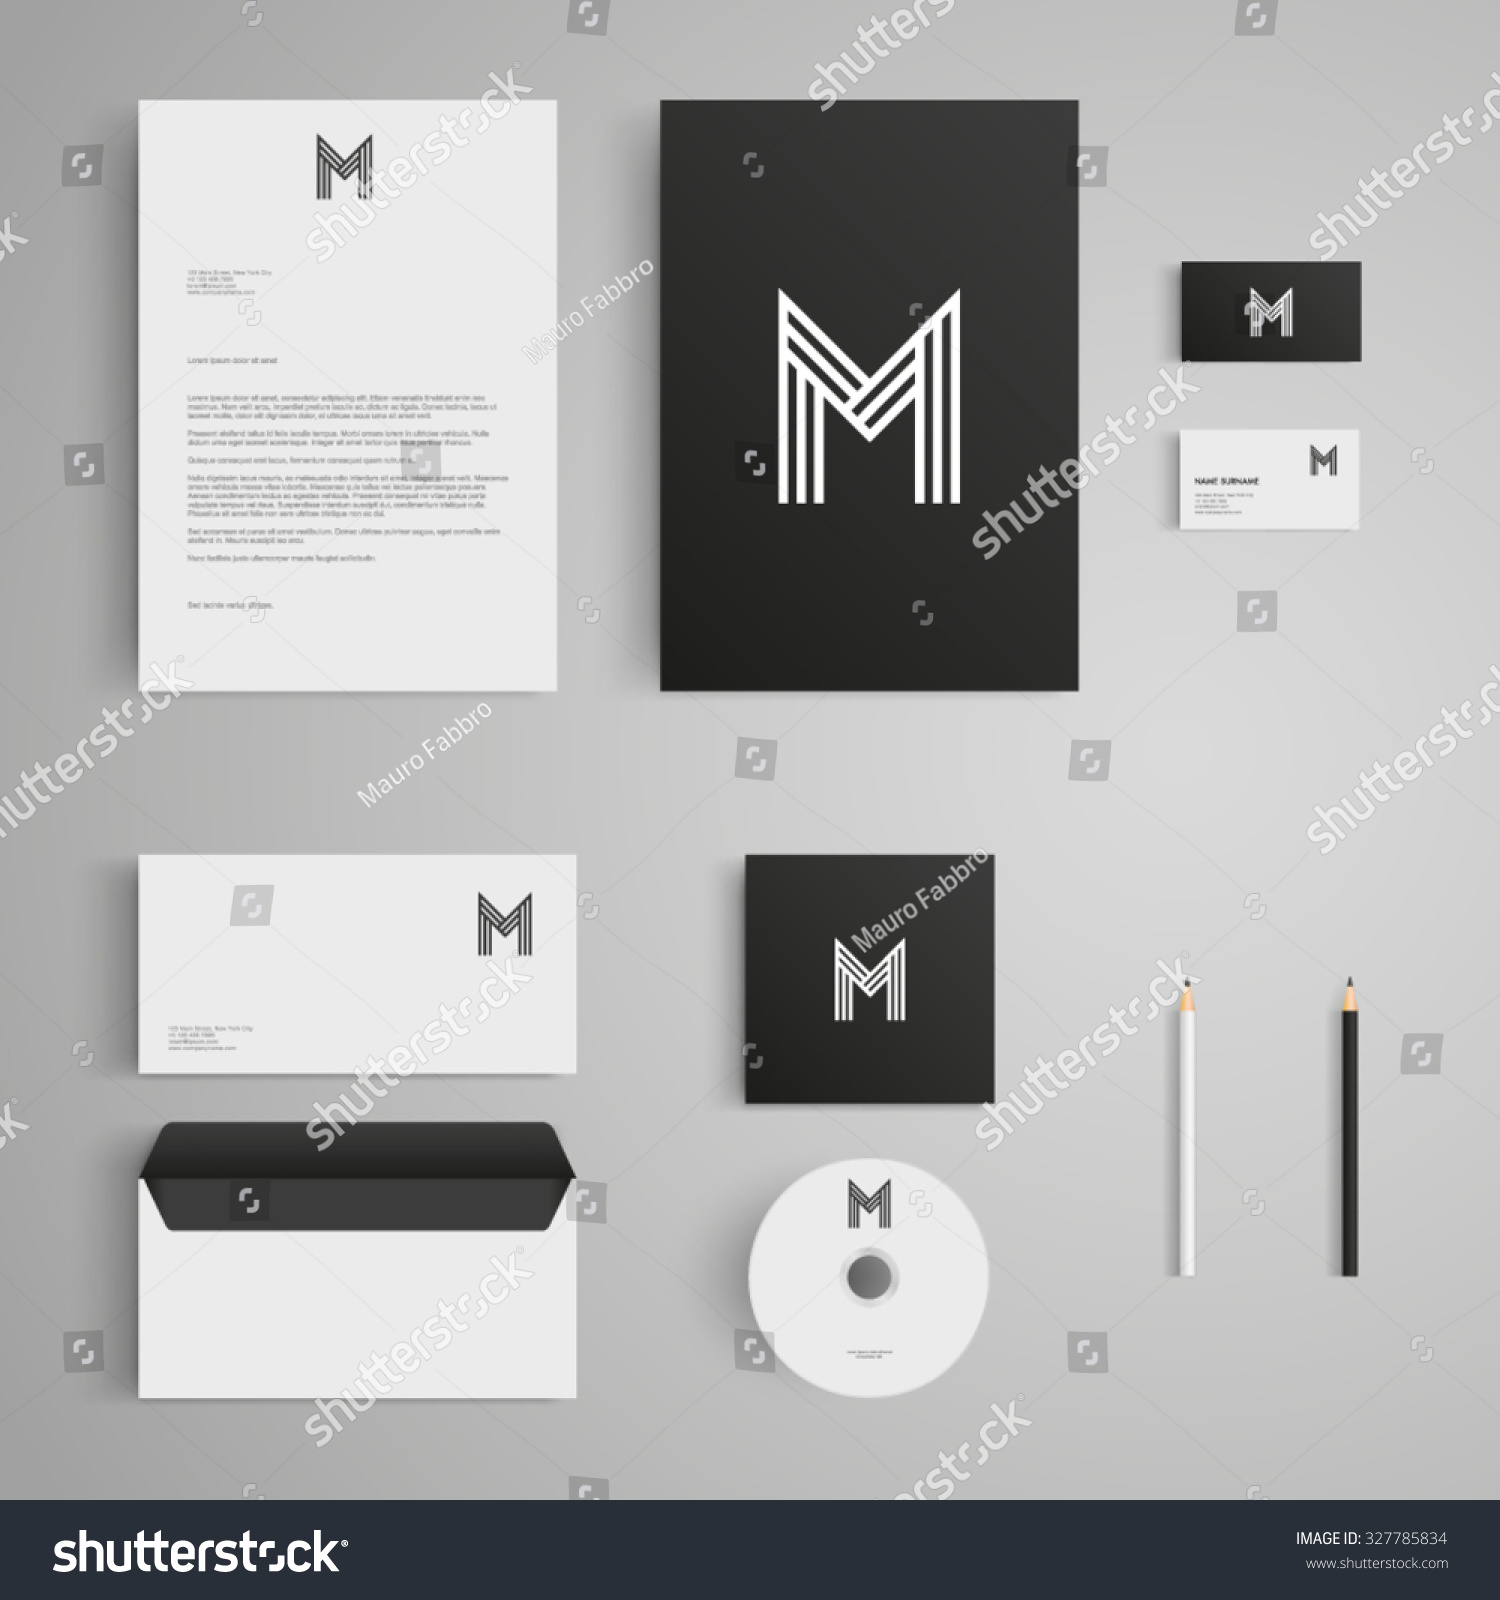 stationery template letter m logo corporate stock vector 327785834 shutterstock. Black Bedroom Furniture Sets. Home Design Ideas